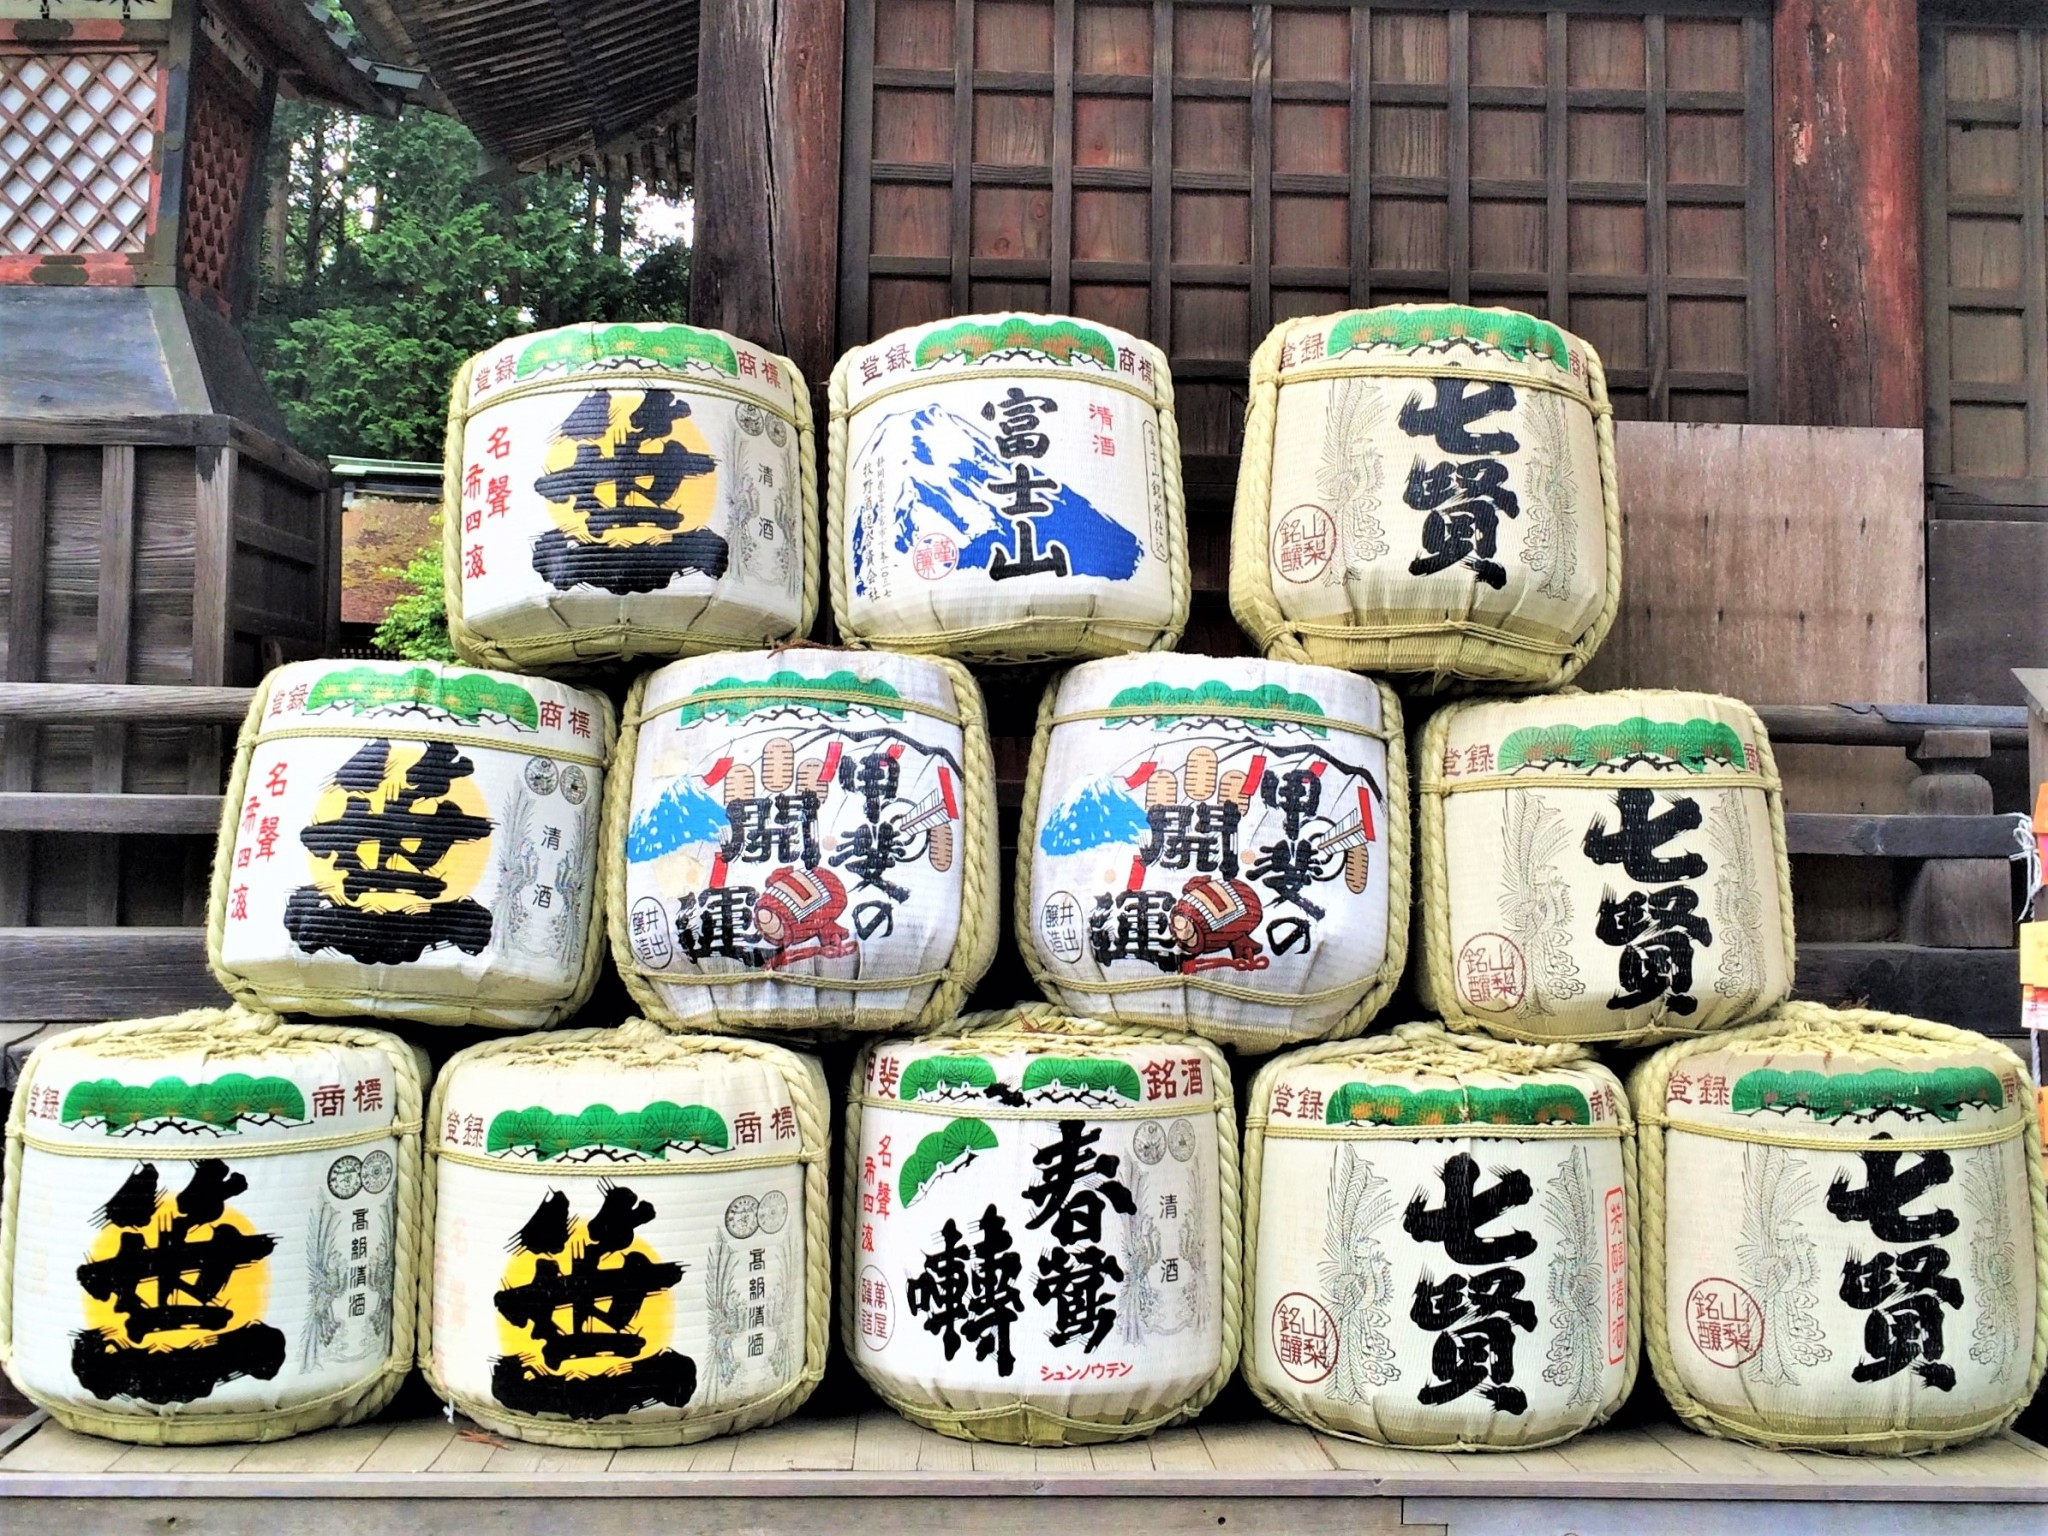 A stack of traditional Japanese sake casks in front of a wooden temple.